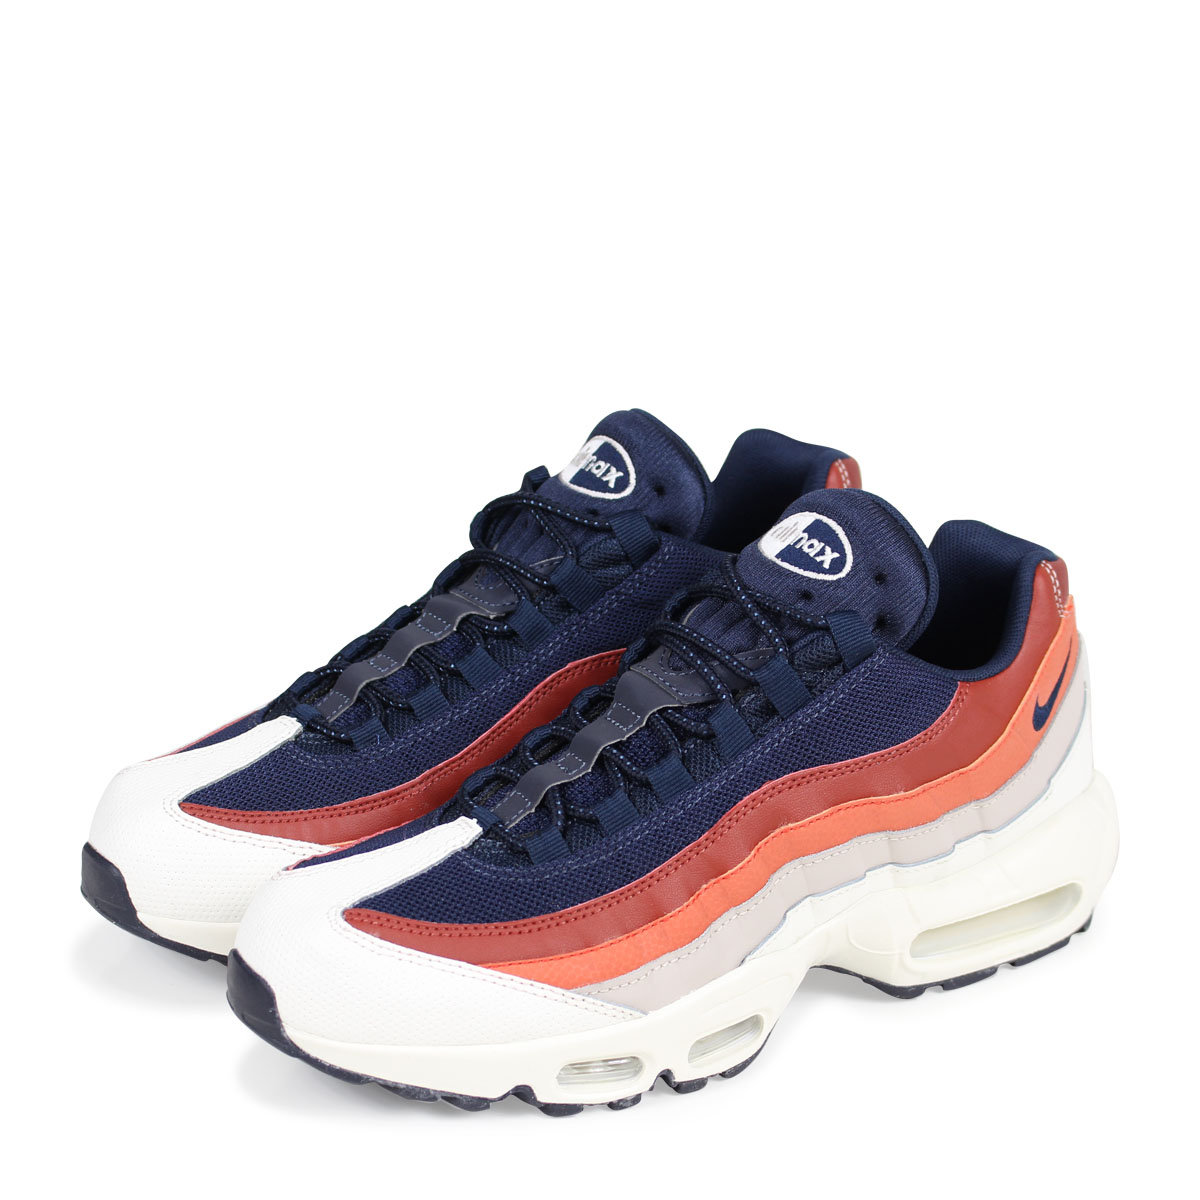 quality design 2aeeb 4db89 NIKE AIR MAX 95 ESSENTIAL Kie Ney AMAX 95 essential sneakers men  749,766-108 off ...